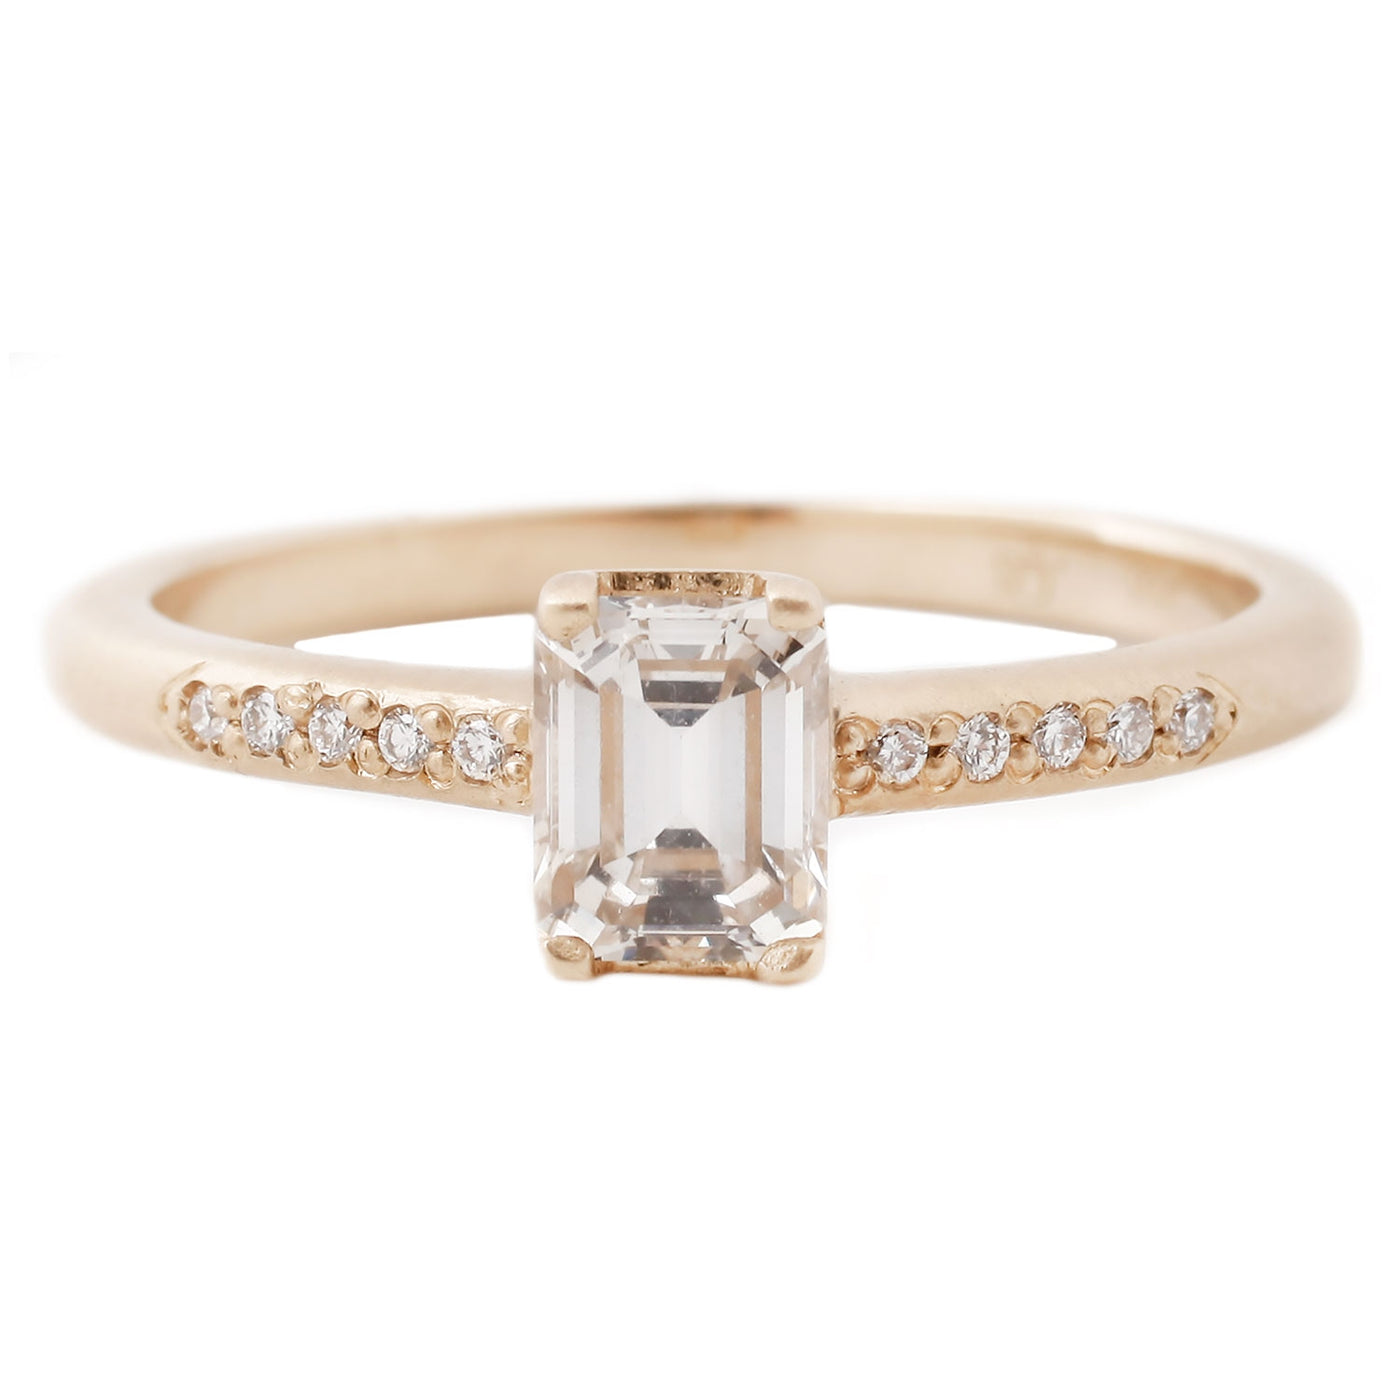 Rebecca Overmann Emerald Cut Diamond Ring